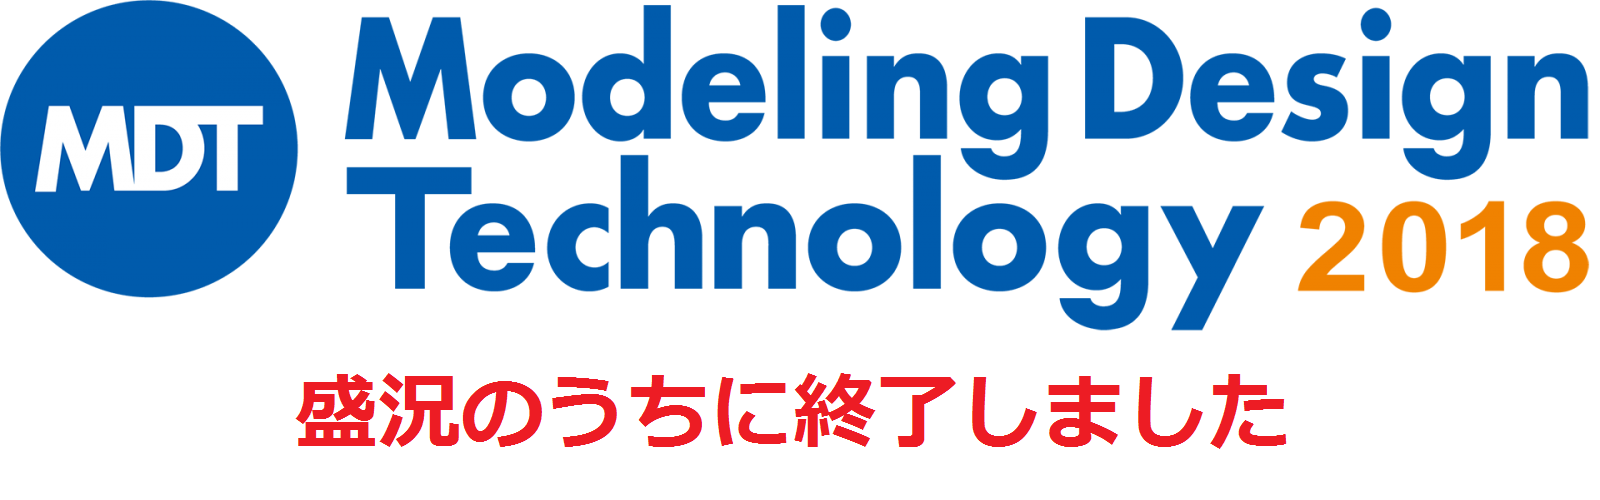 Modeling Design Technology 2018